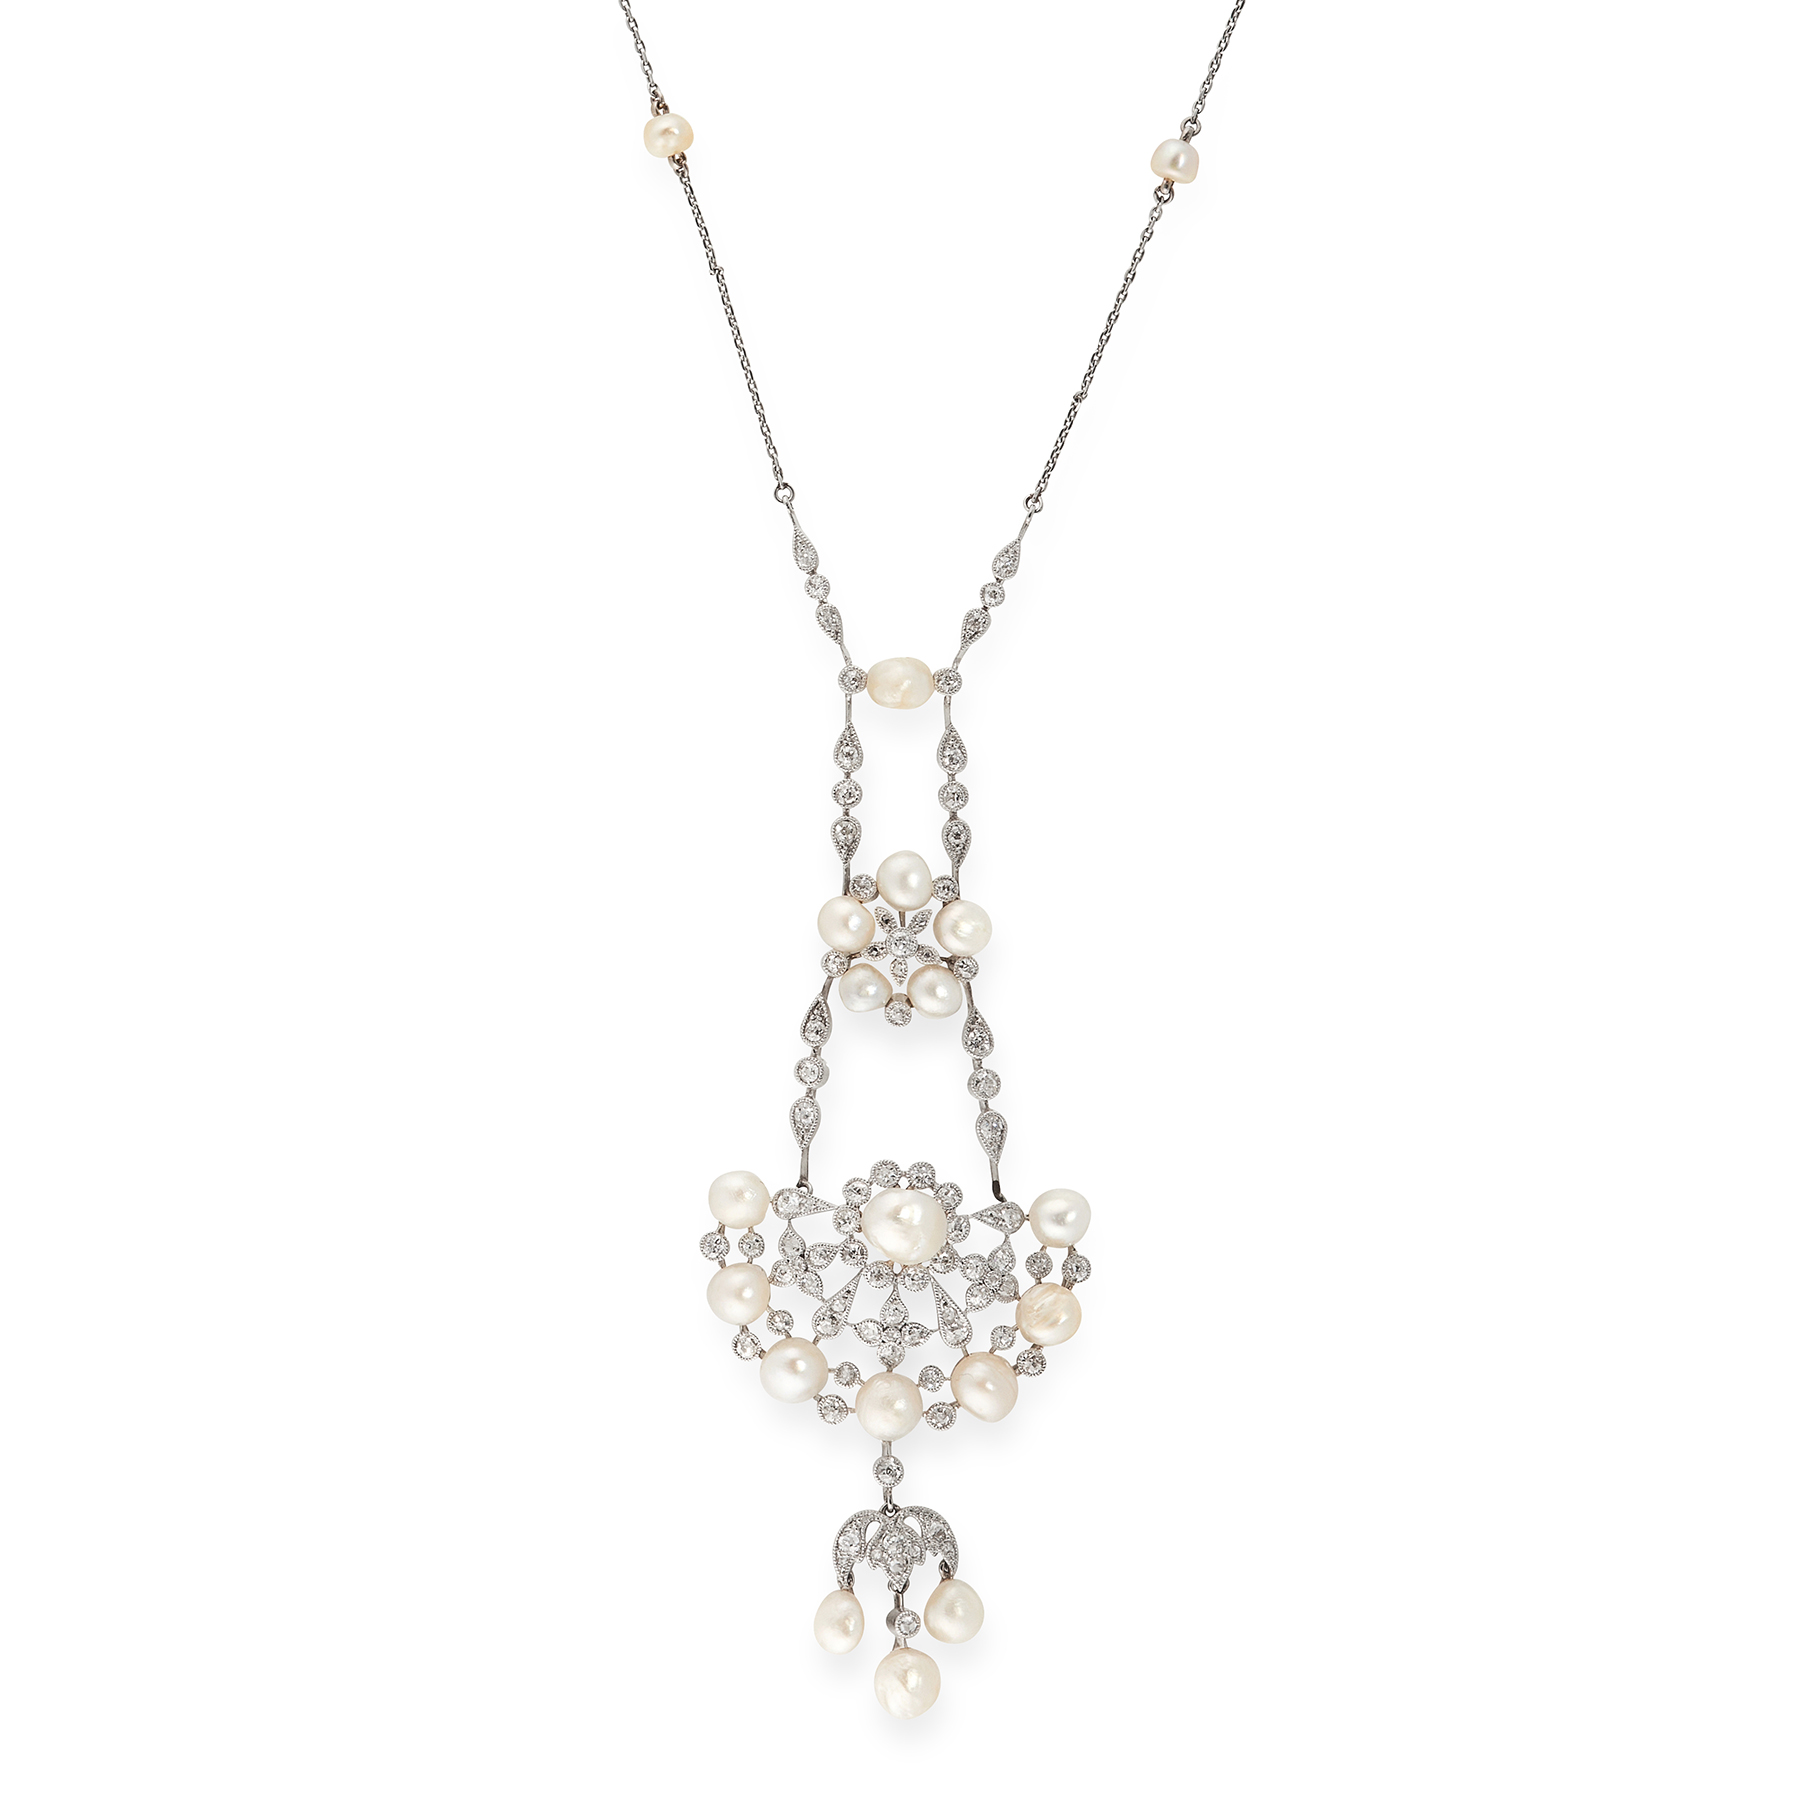 AN ANTIQUE NATURAL SALTWATER PEARL AND DIAMOND PENDANT NECKLACE the pendant is set with two clusters